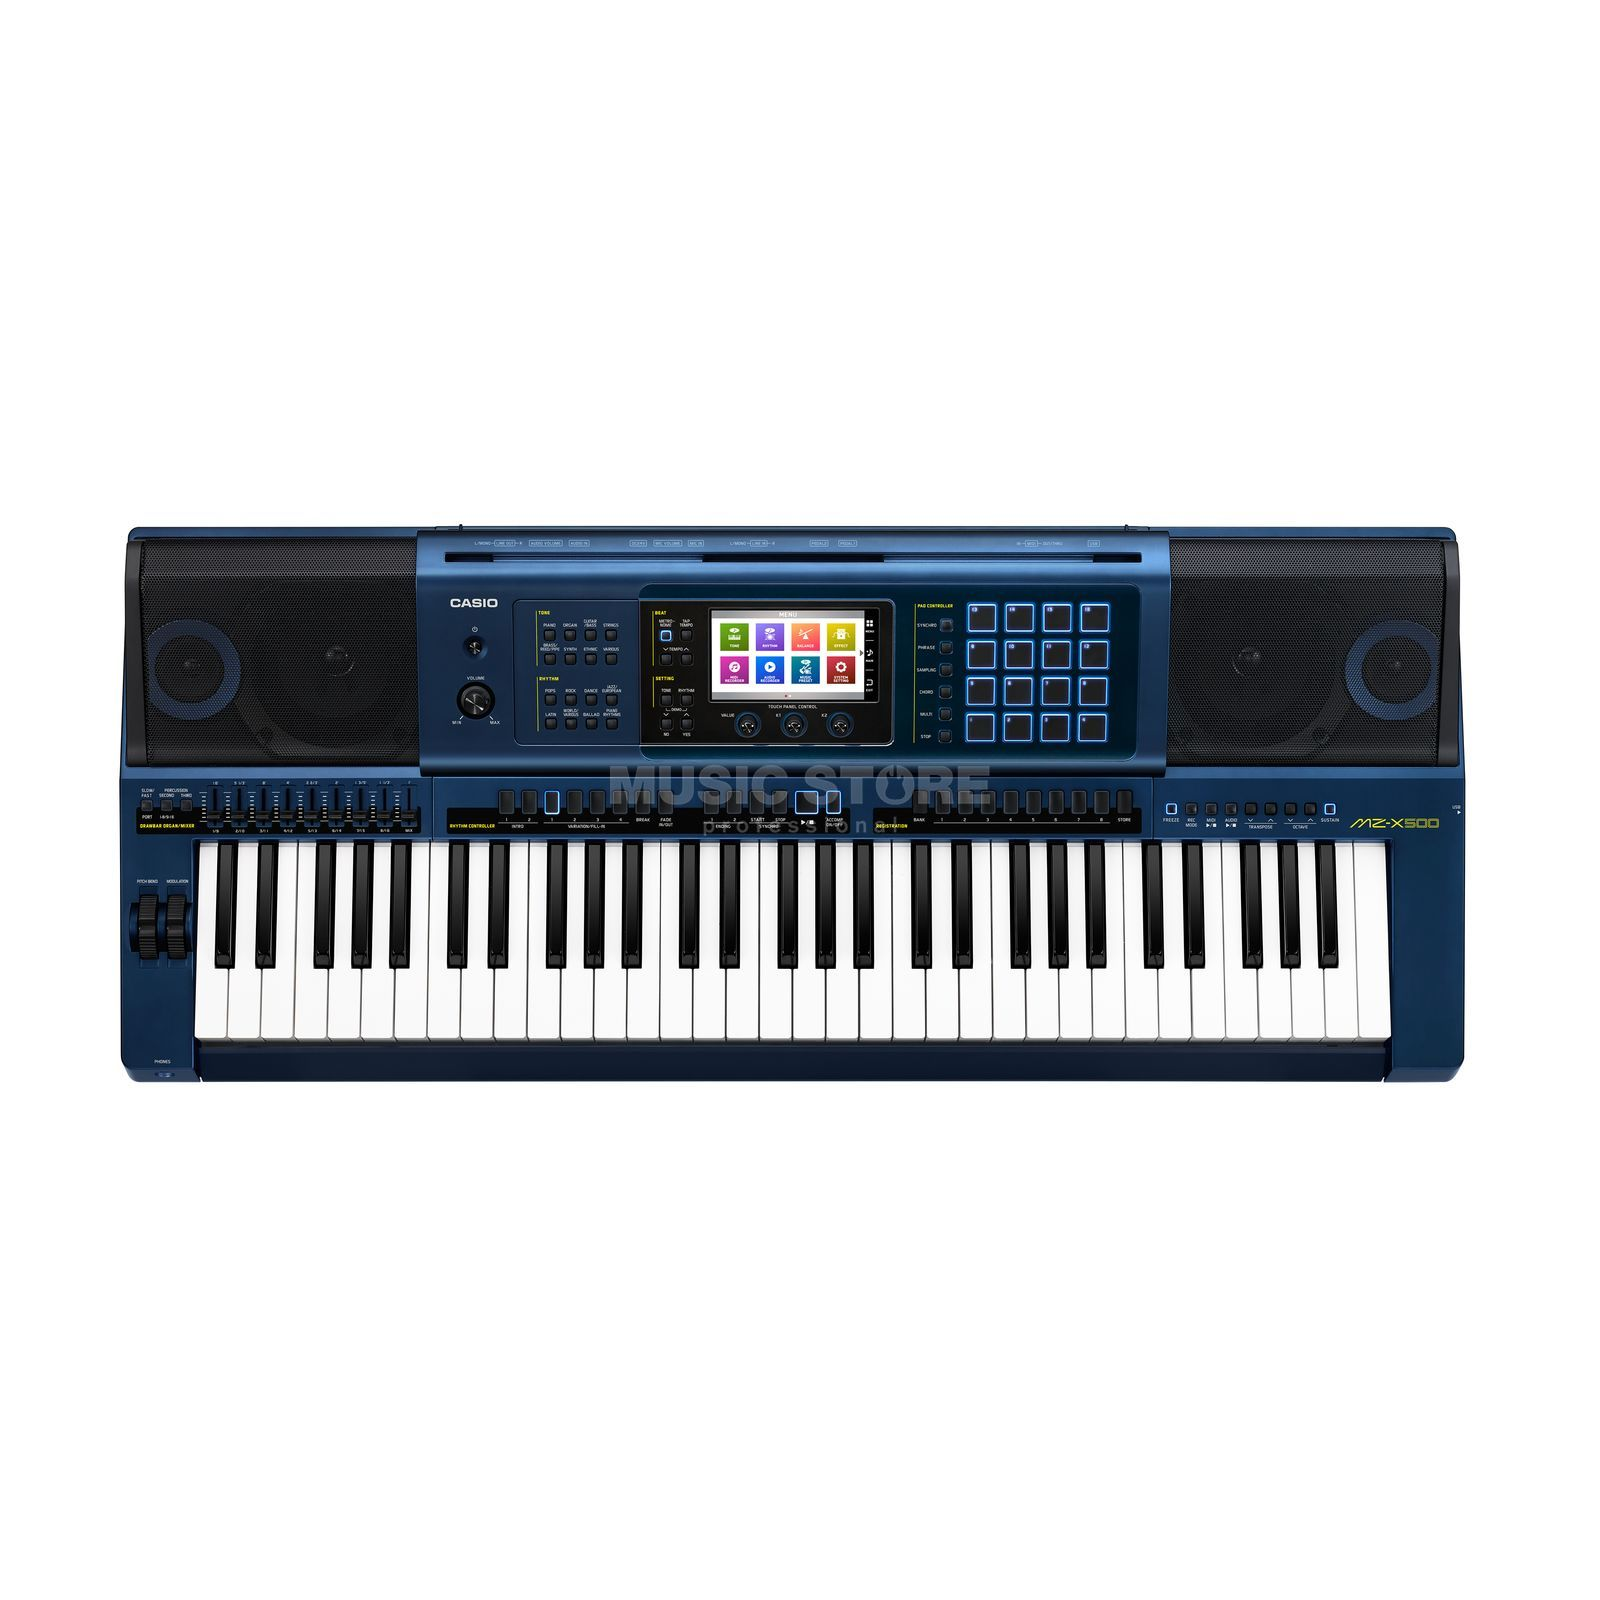 Casio MZ-X500 Premium Entertainer Keyboard Produktbillede